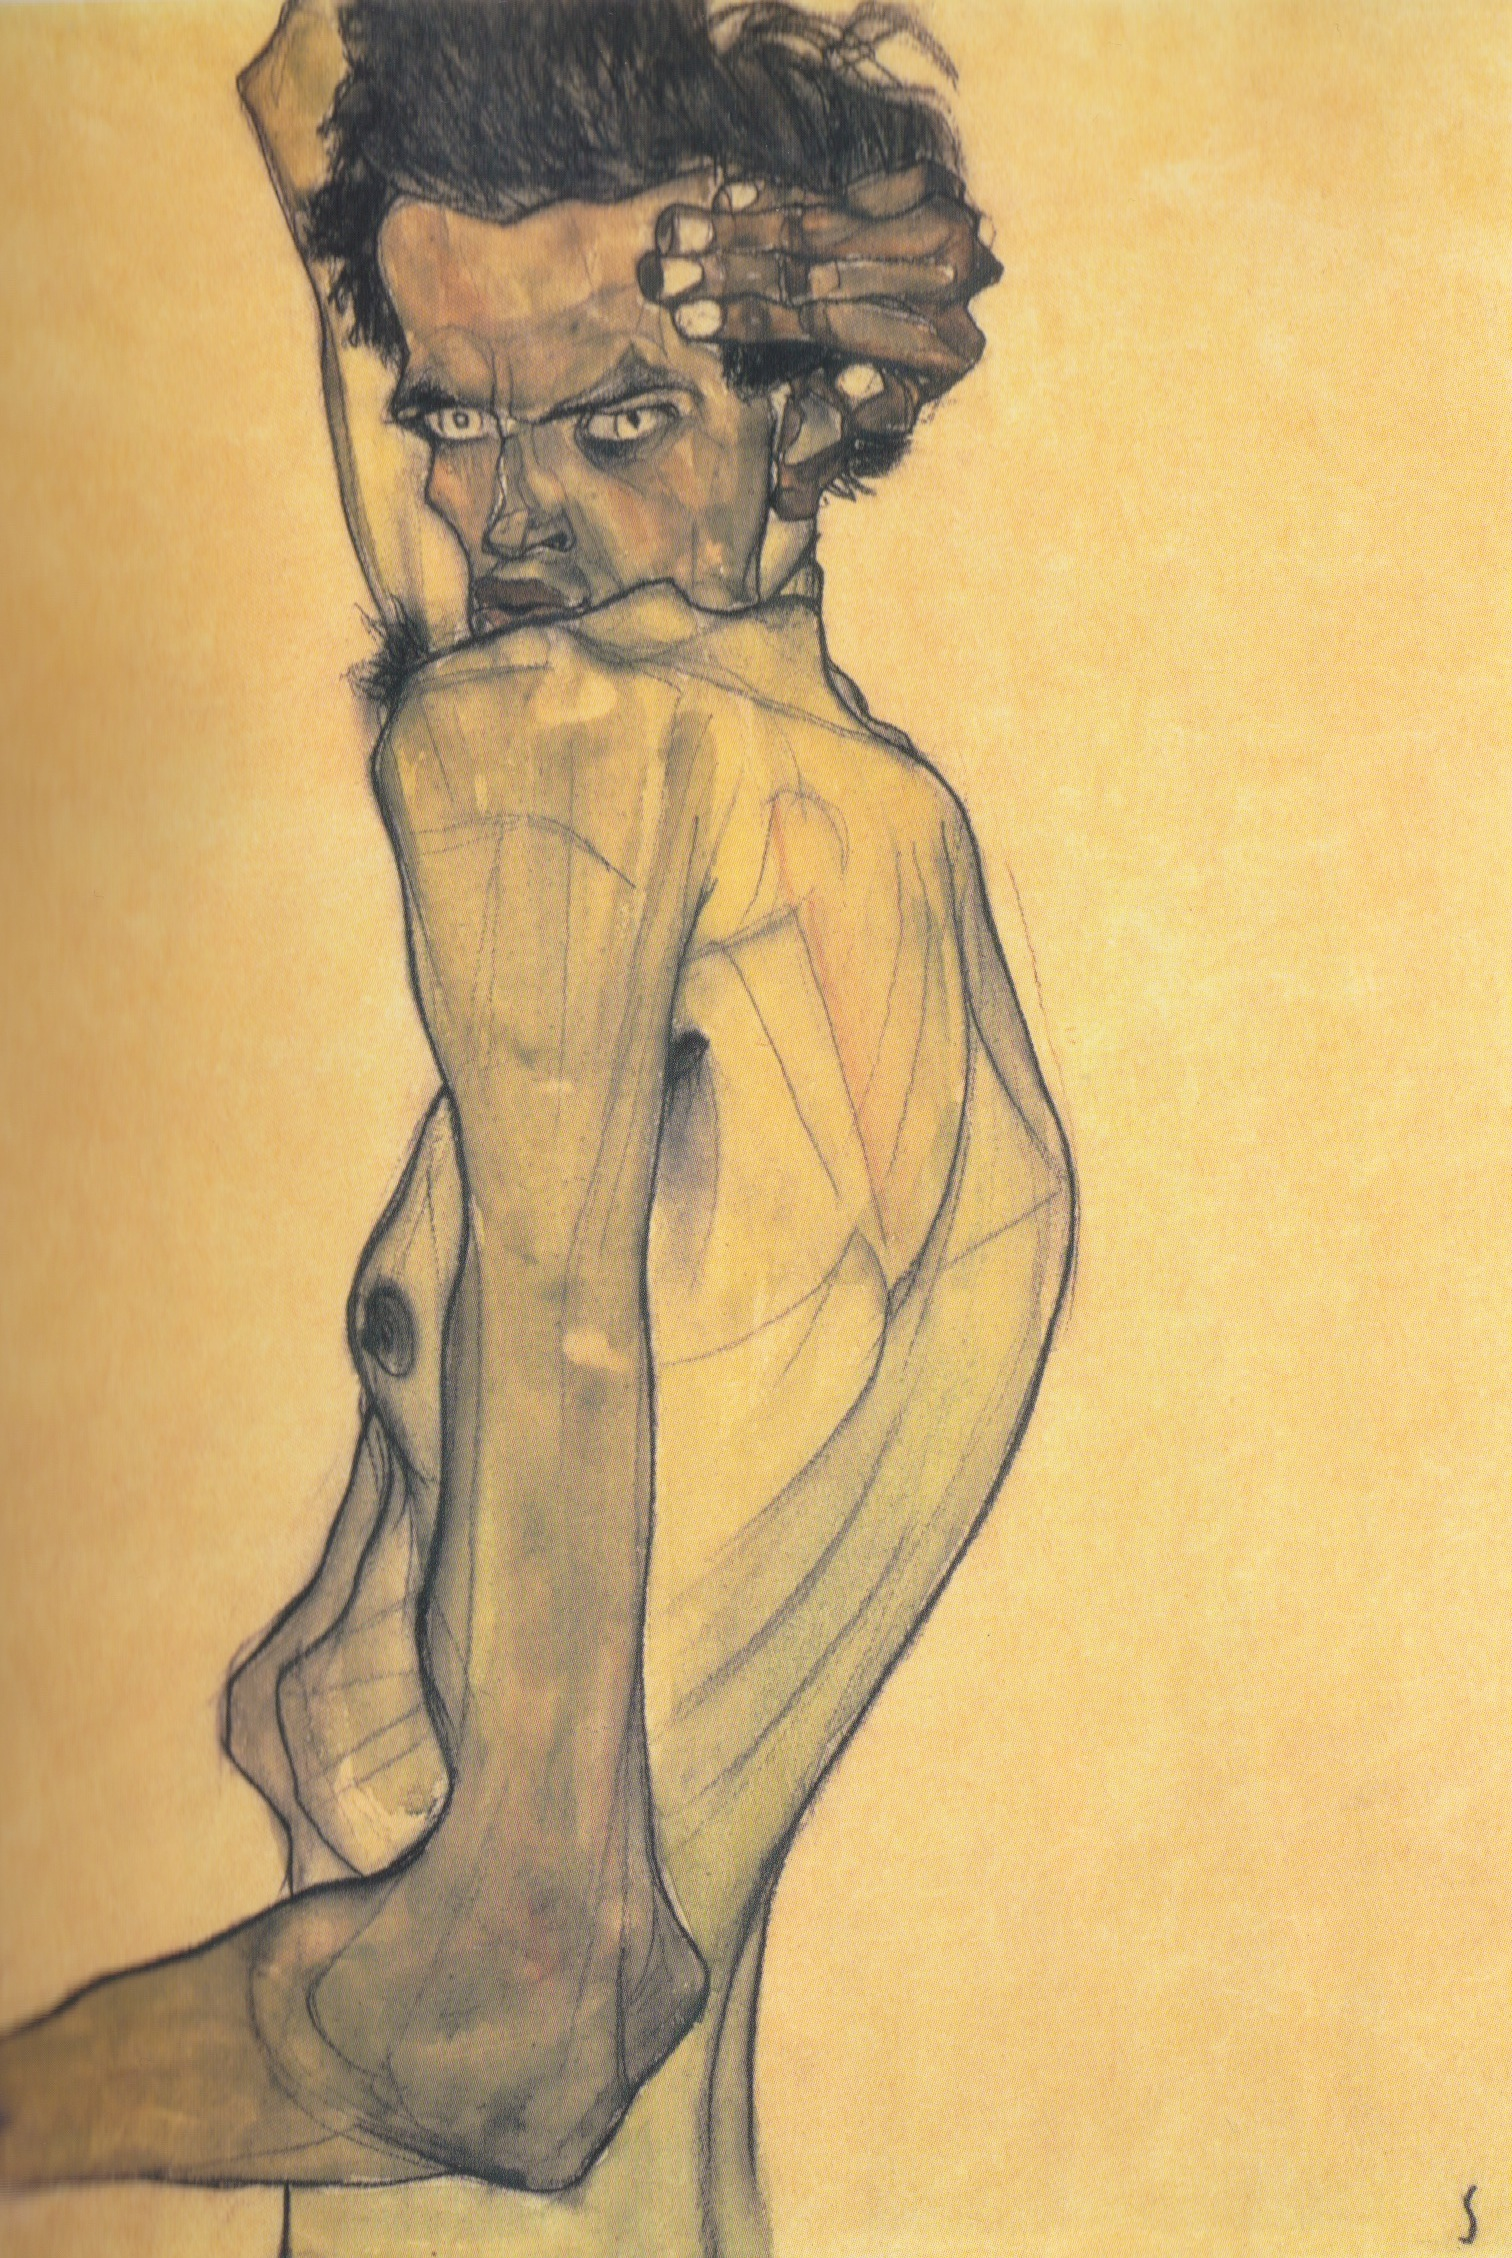 Self Portrait with Arm Twisting Above Head (1910)